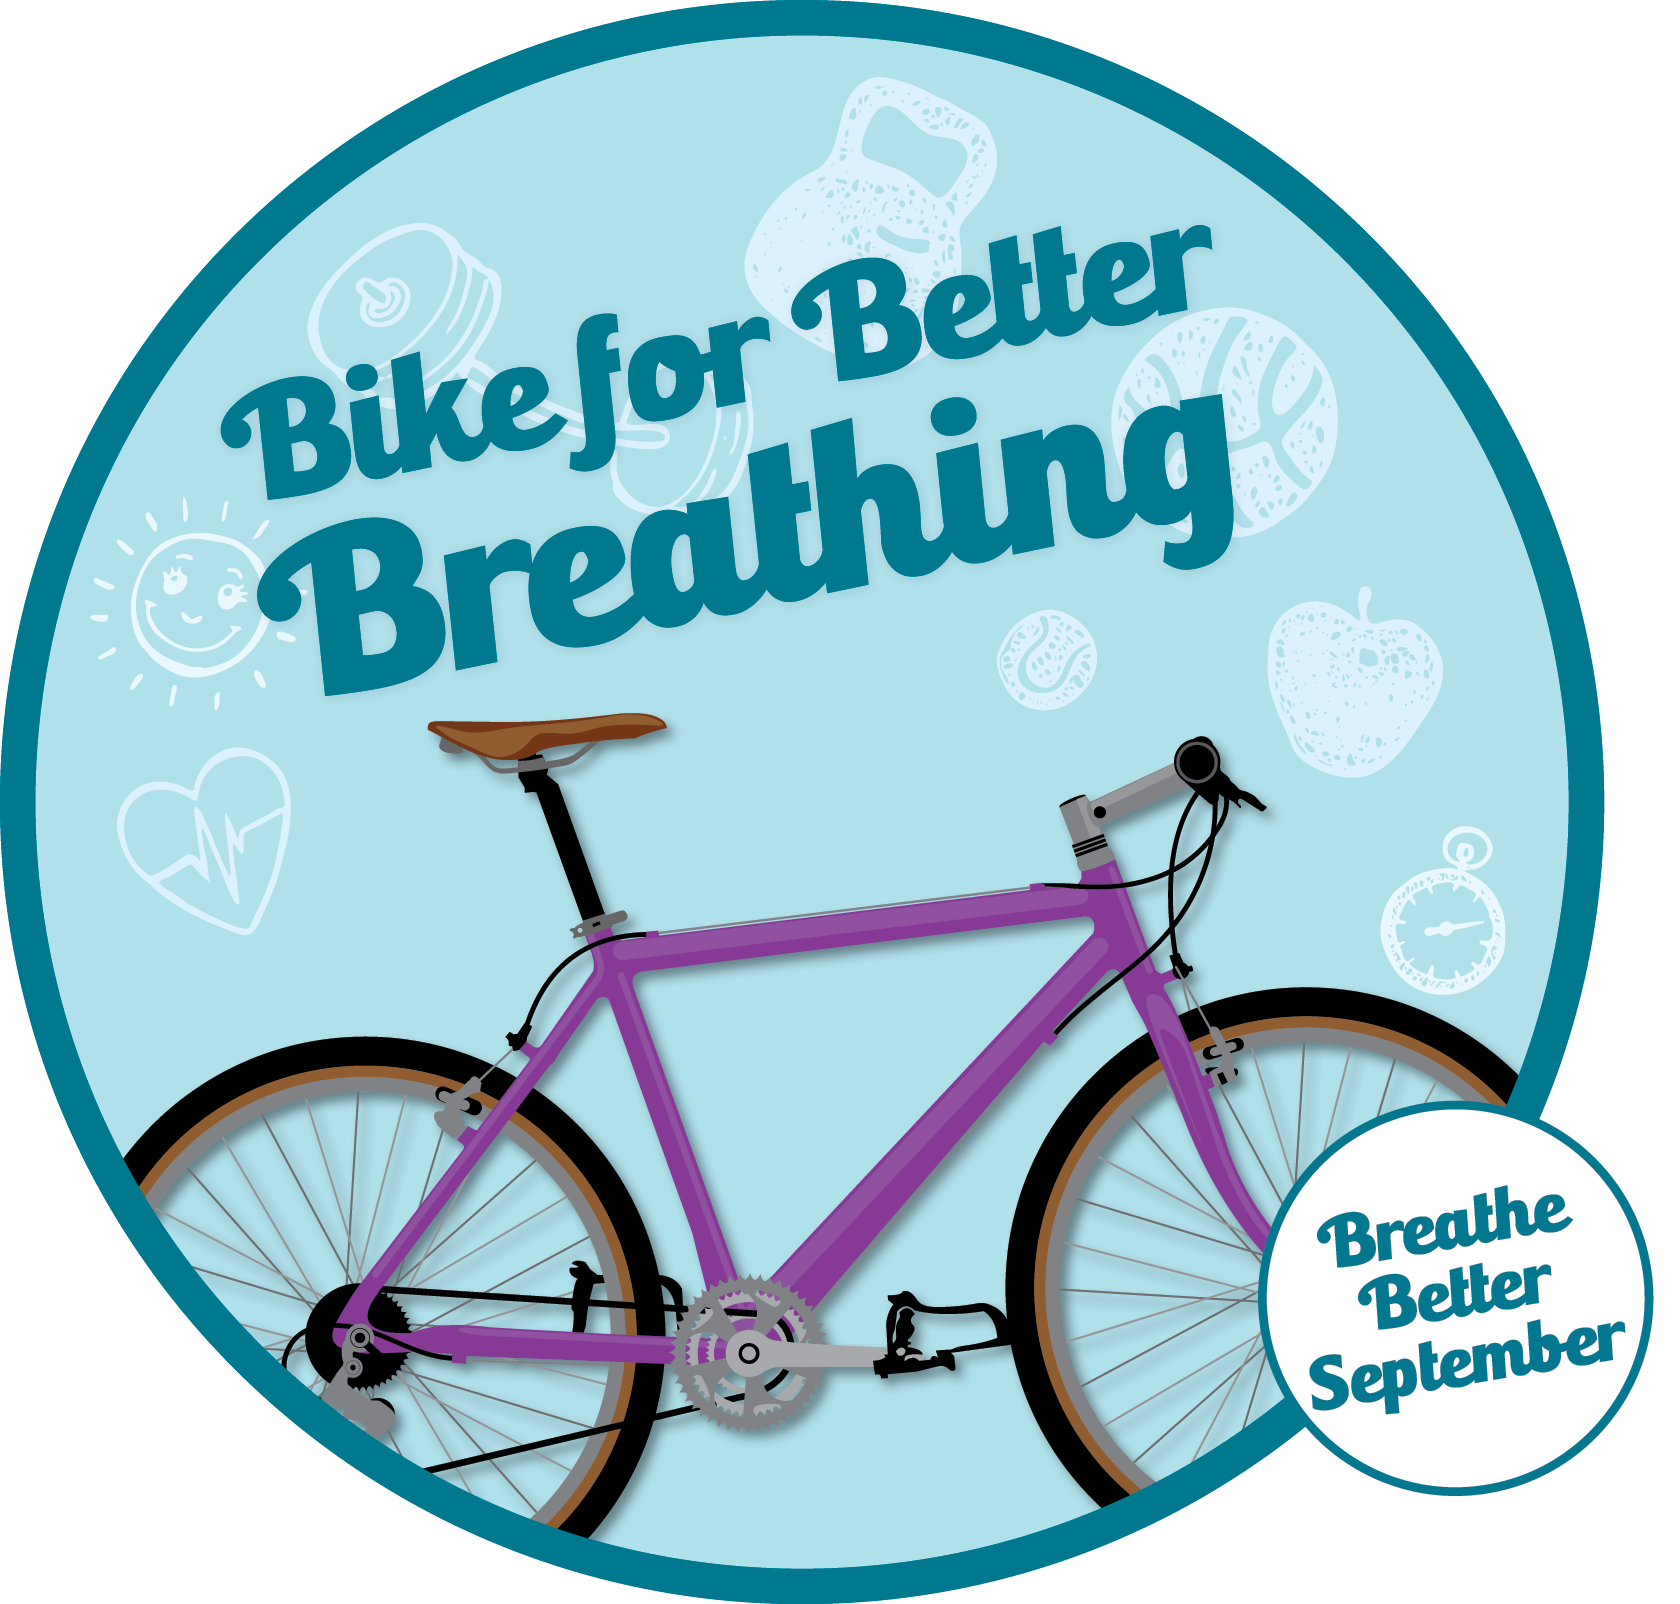 BBS-Bike-for-better-breathing-2-with-logo.png#asset:3316